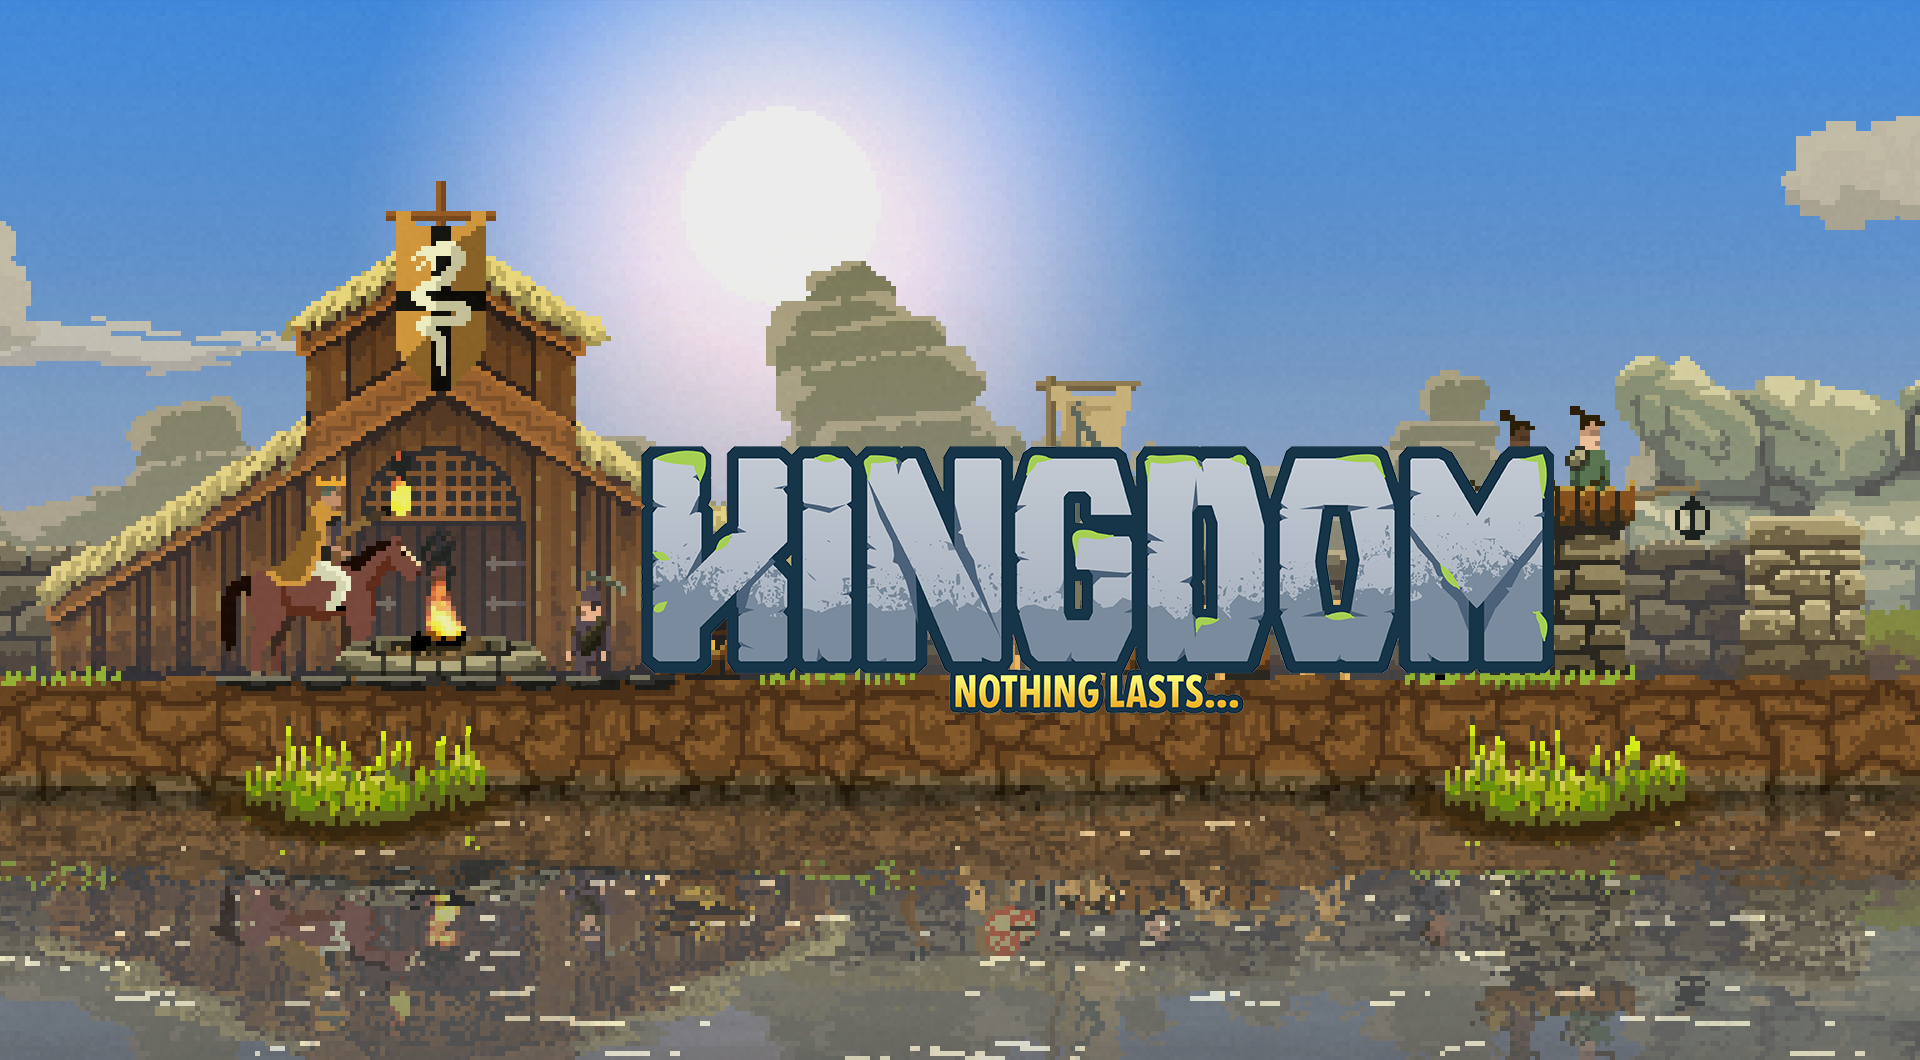 kingdom_nothing_lasts.png